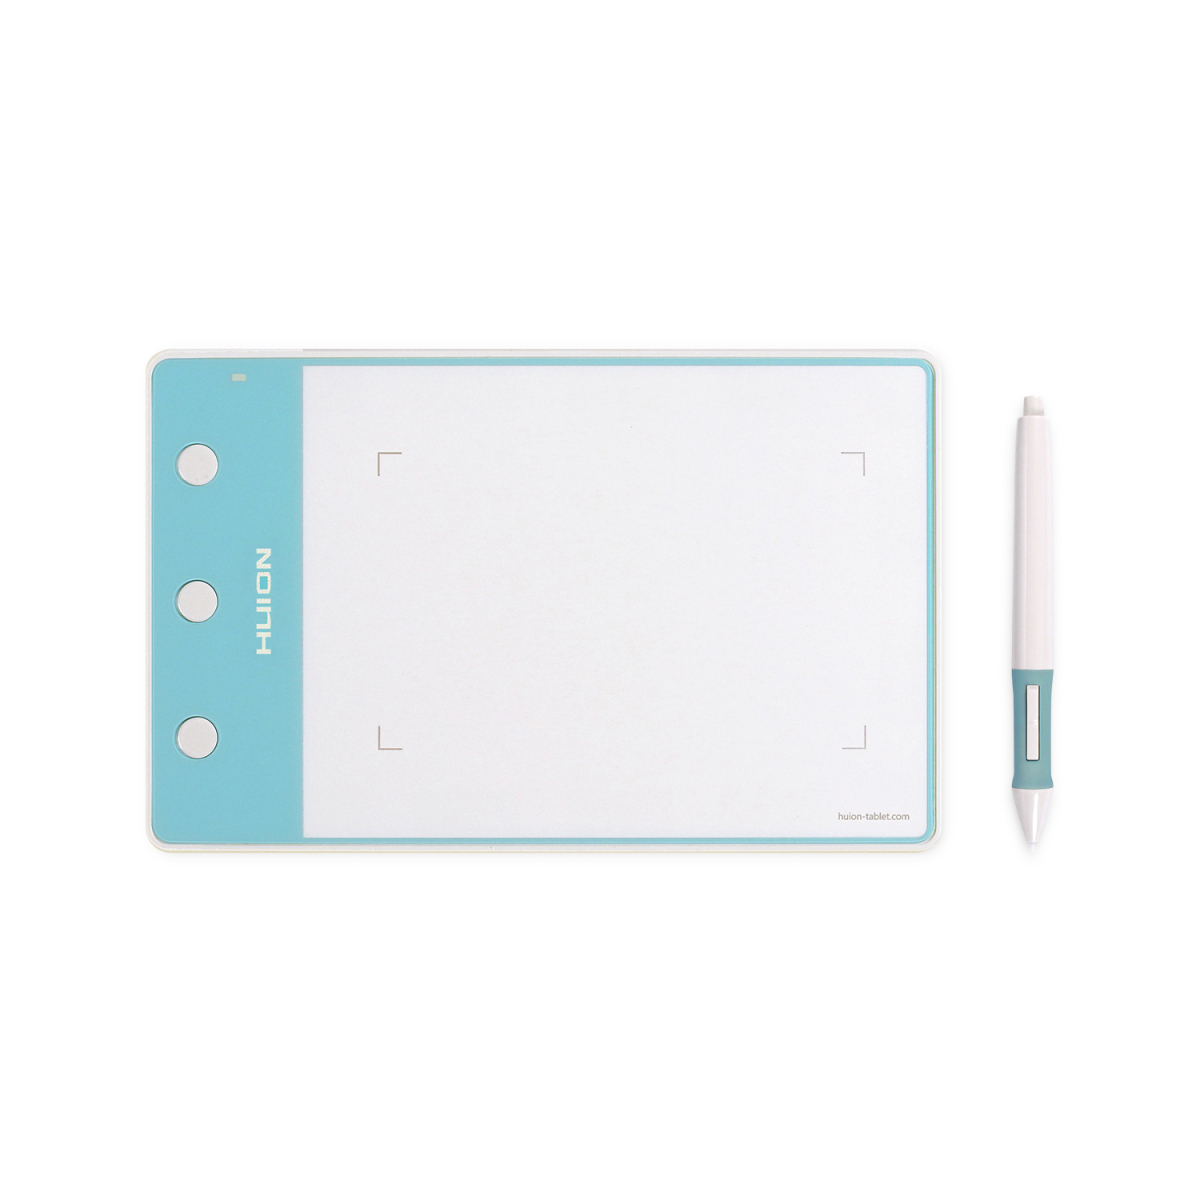 Huion H420 Osu Drawing Tablet With Absolute Tracking Huion Official Store Drawing Tablets Pen Tablets Pen Display Led Light Pad